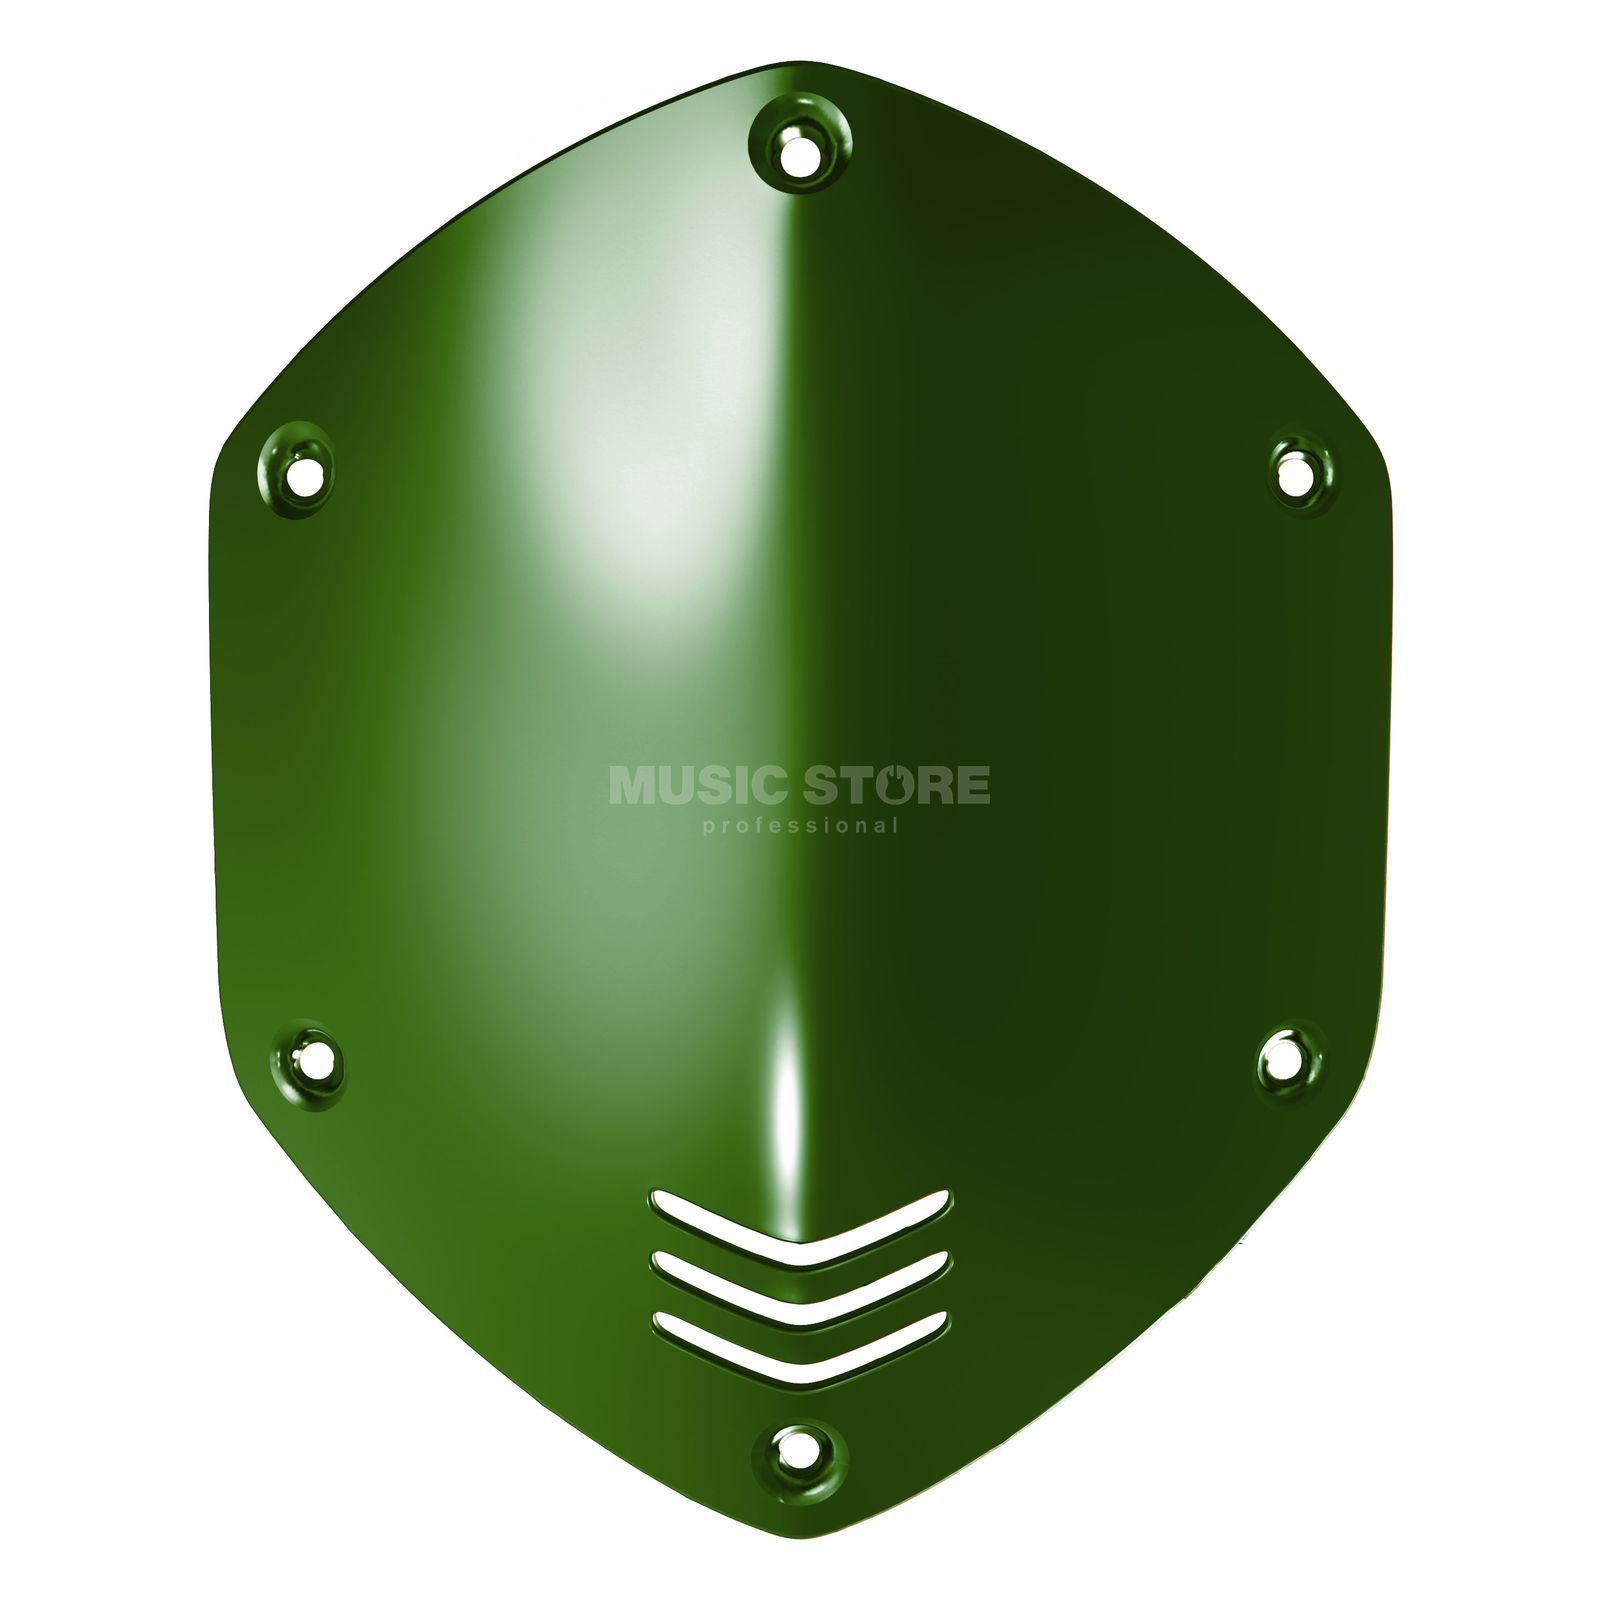 V-Moda Shield Kit M-100/LP2 (Over-Ear) hawk green Image du produit